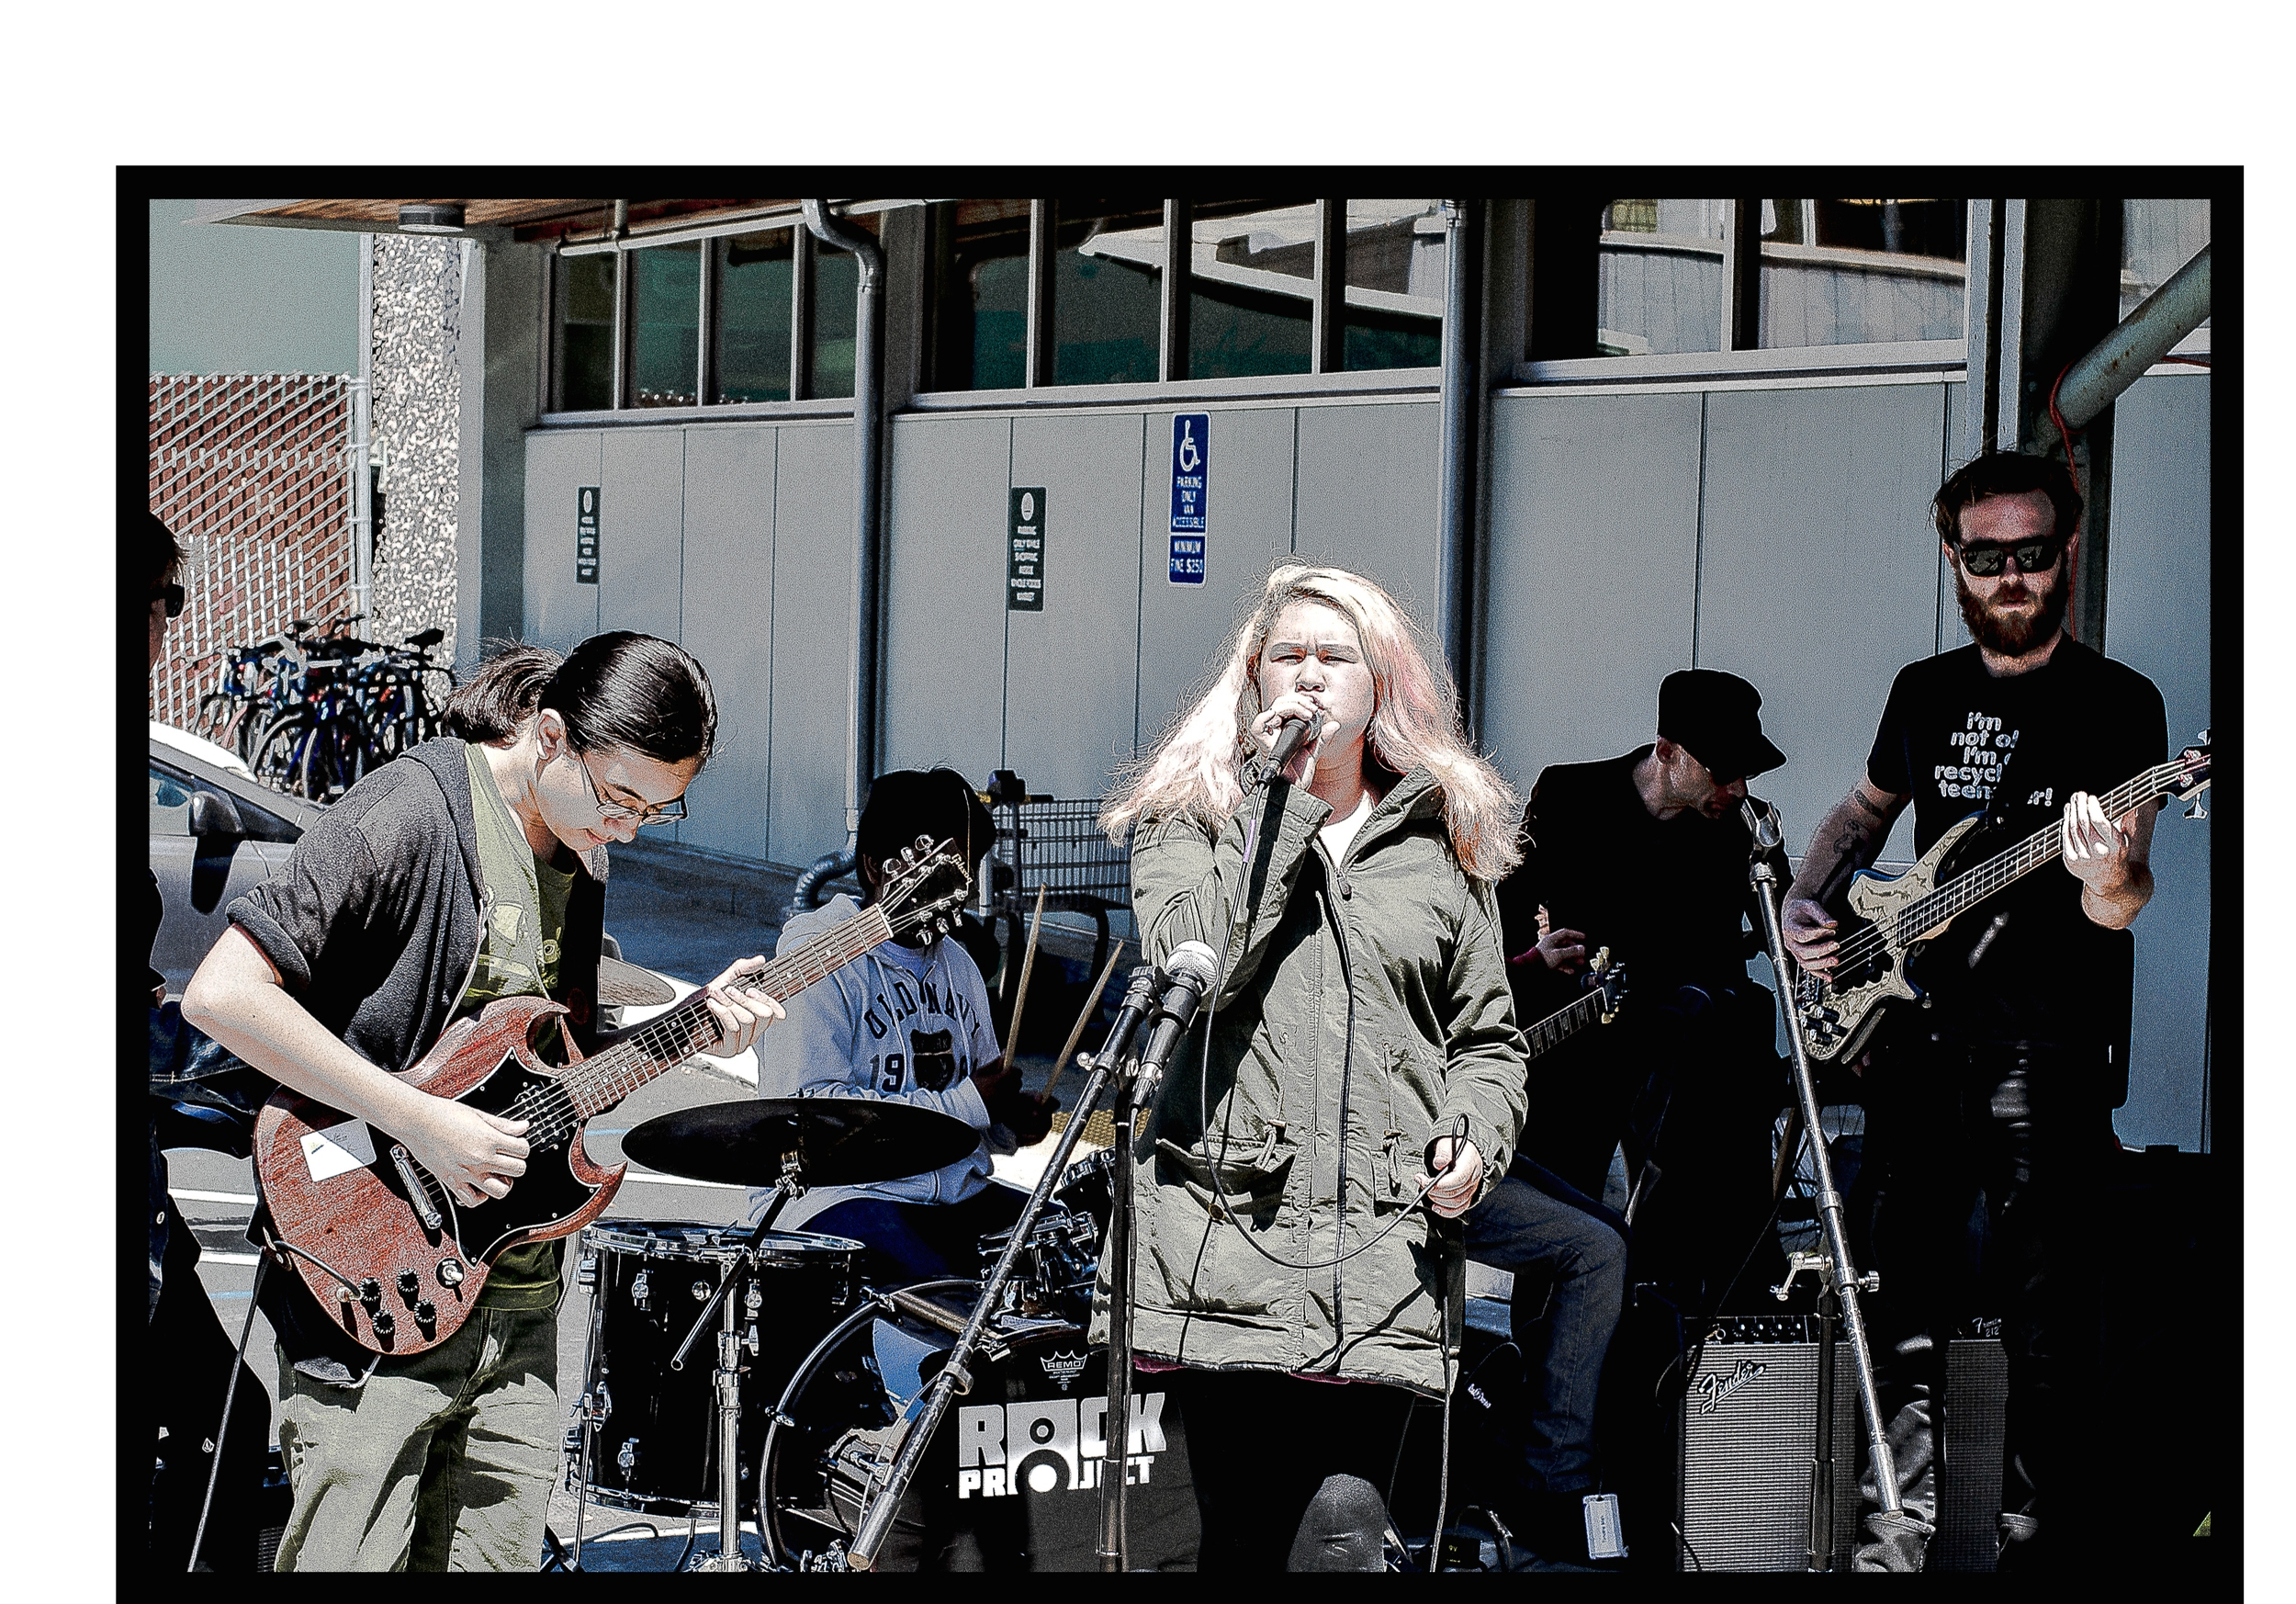 Rock Project San Francisco - House Band